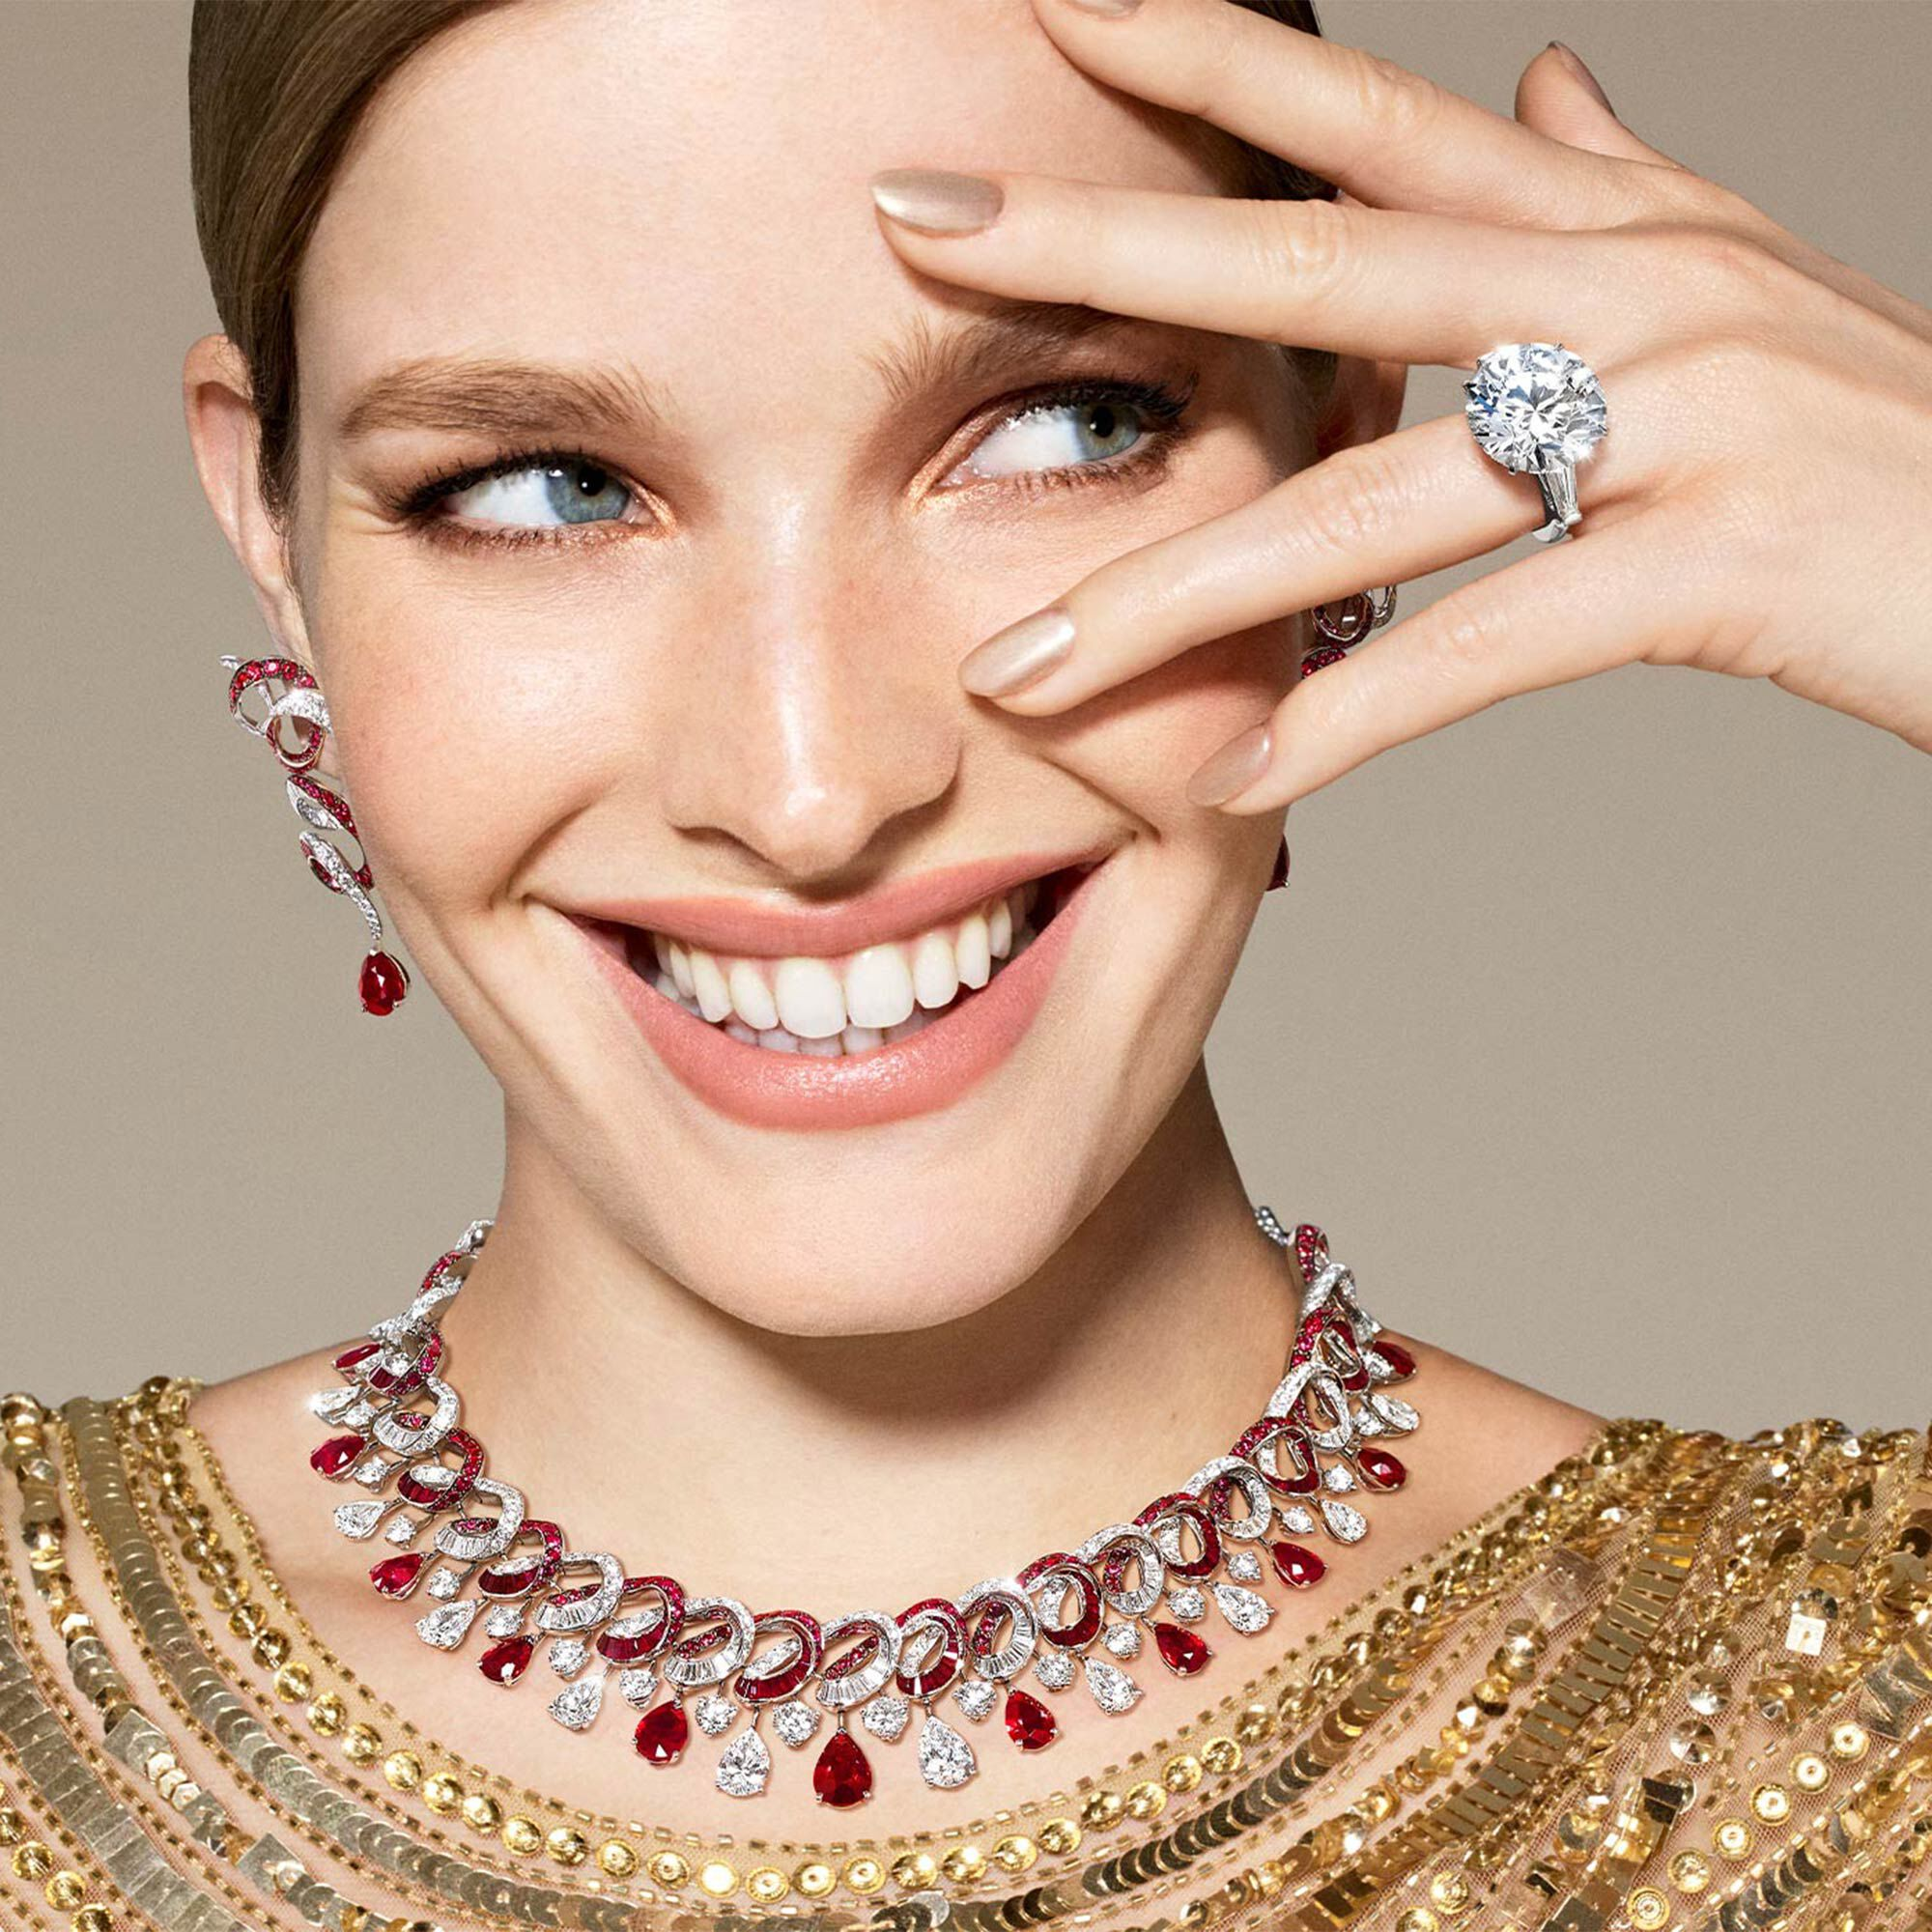 Model wears Graff ruby and white diamond high jewellery